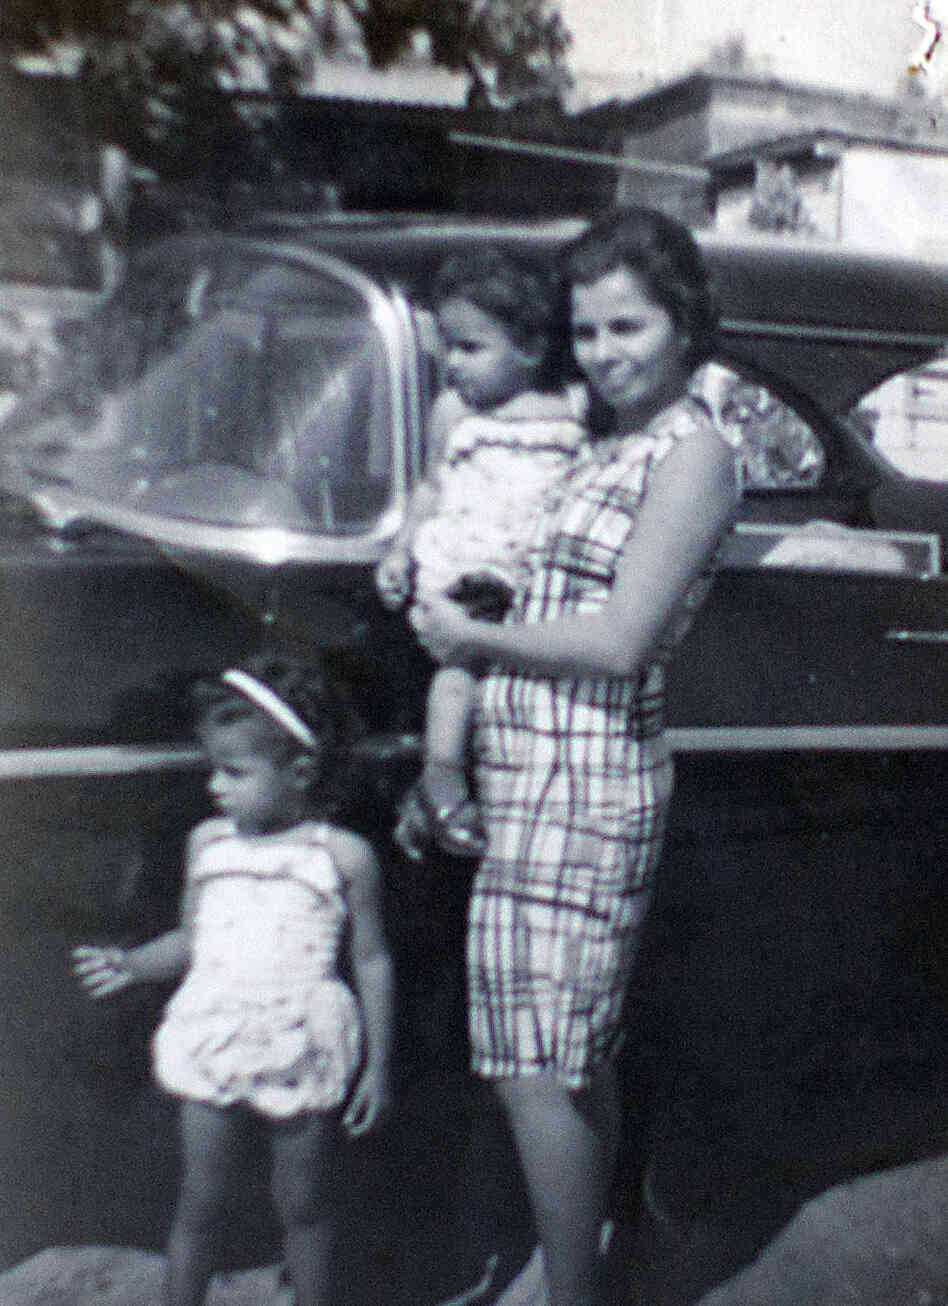 In this family photo, Arlene Bonet and her younger sister Genoveva are seen with their mother, also named Genoveva, in Puerto Rico.